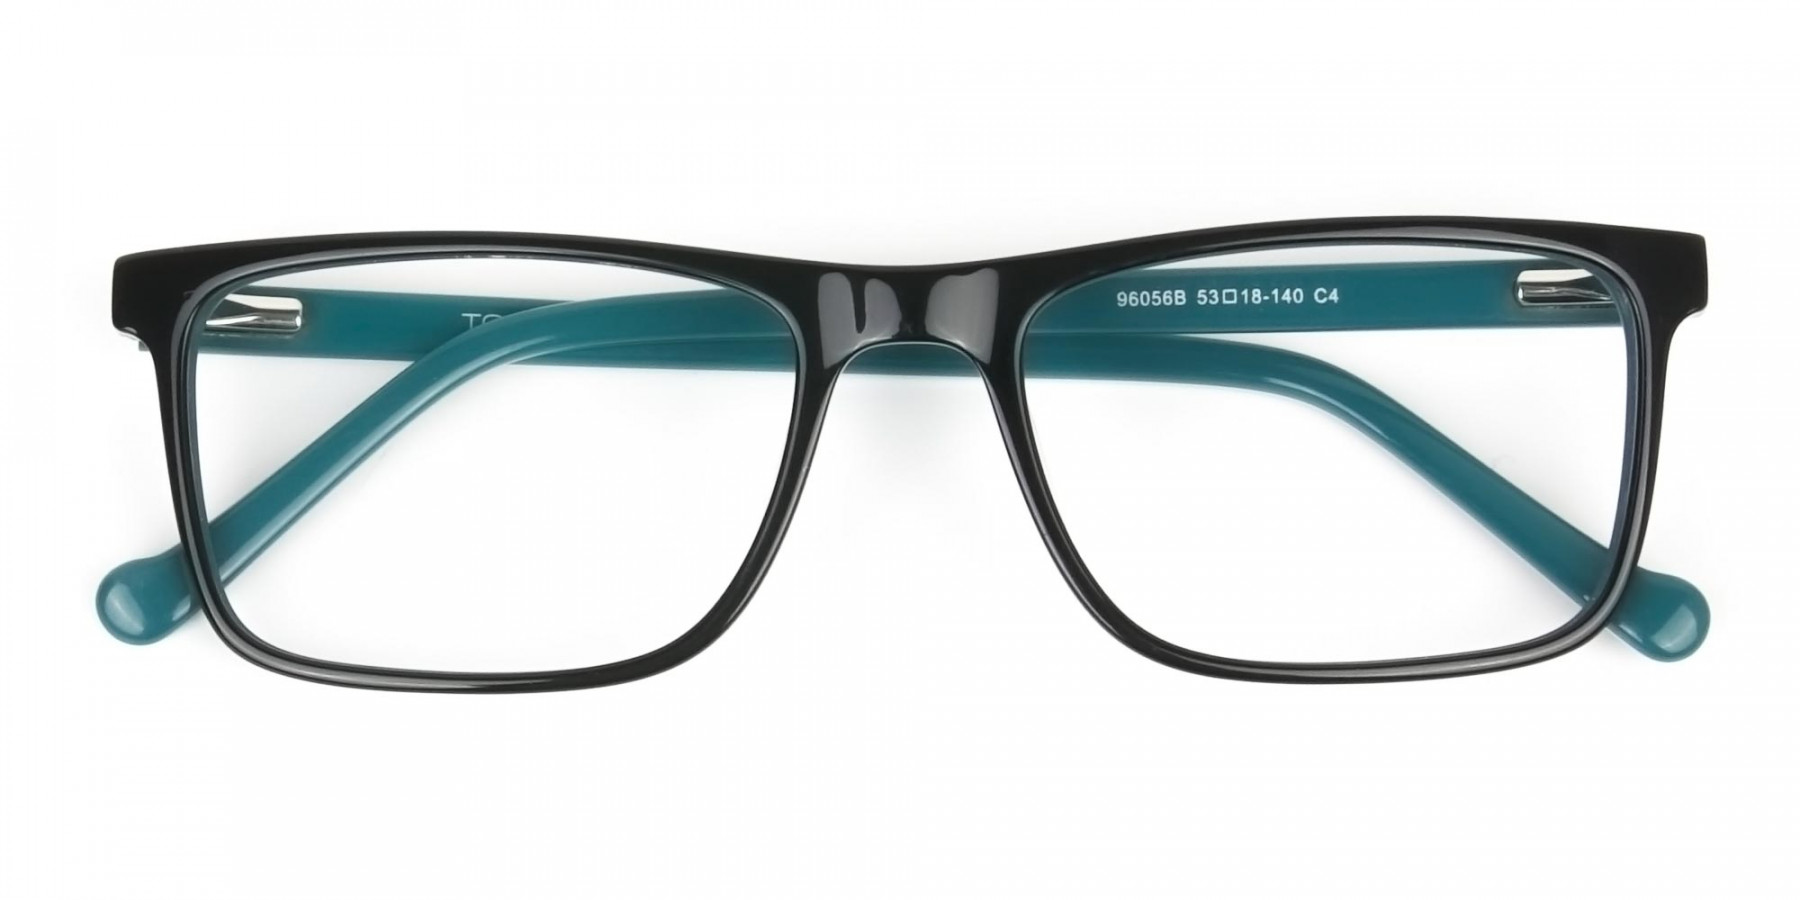 Round Temple Tip Black & Teal Glasses in Rectangular - 1